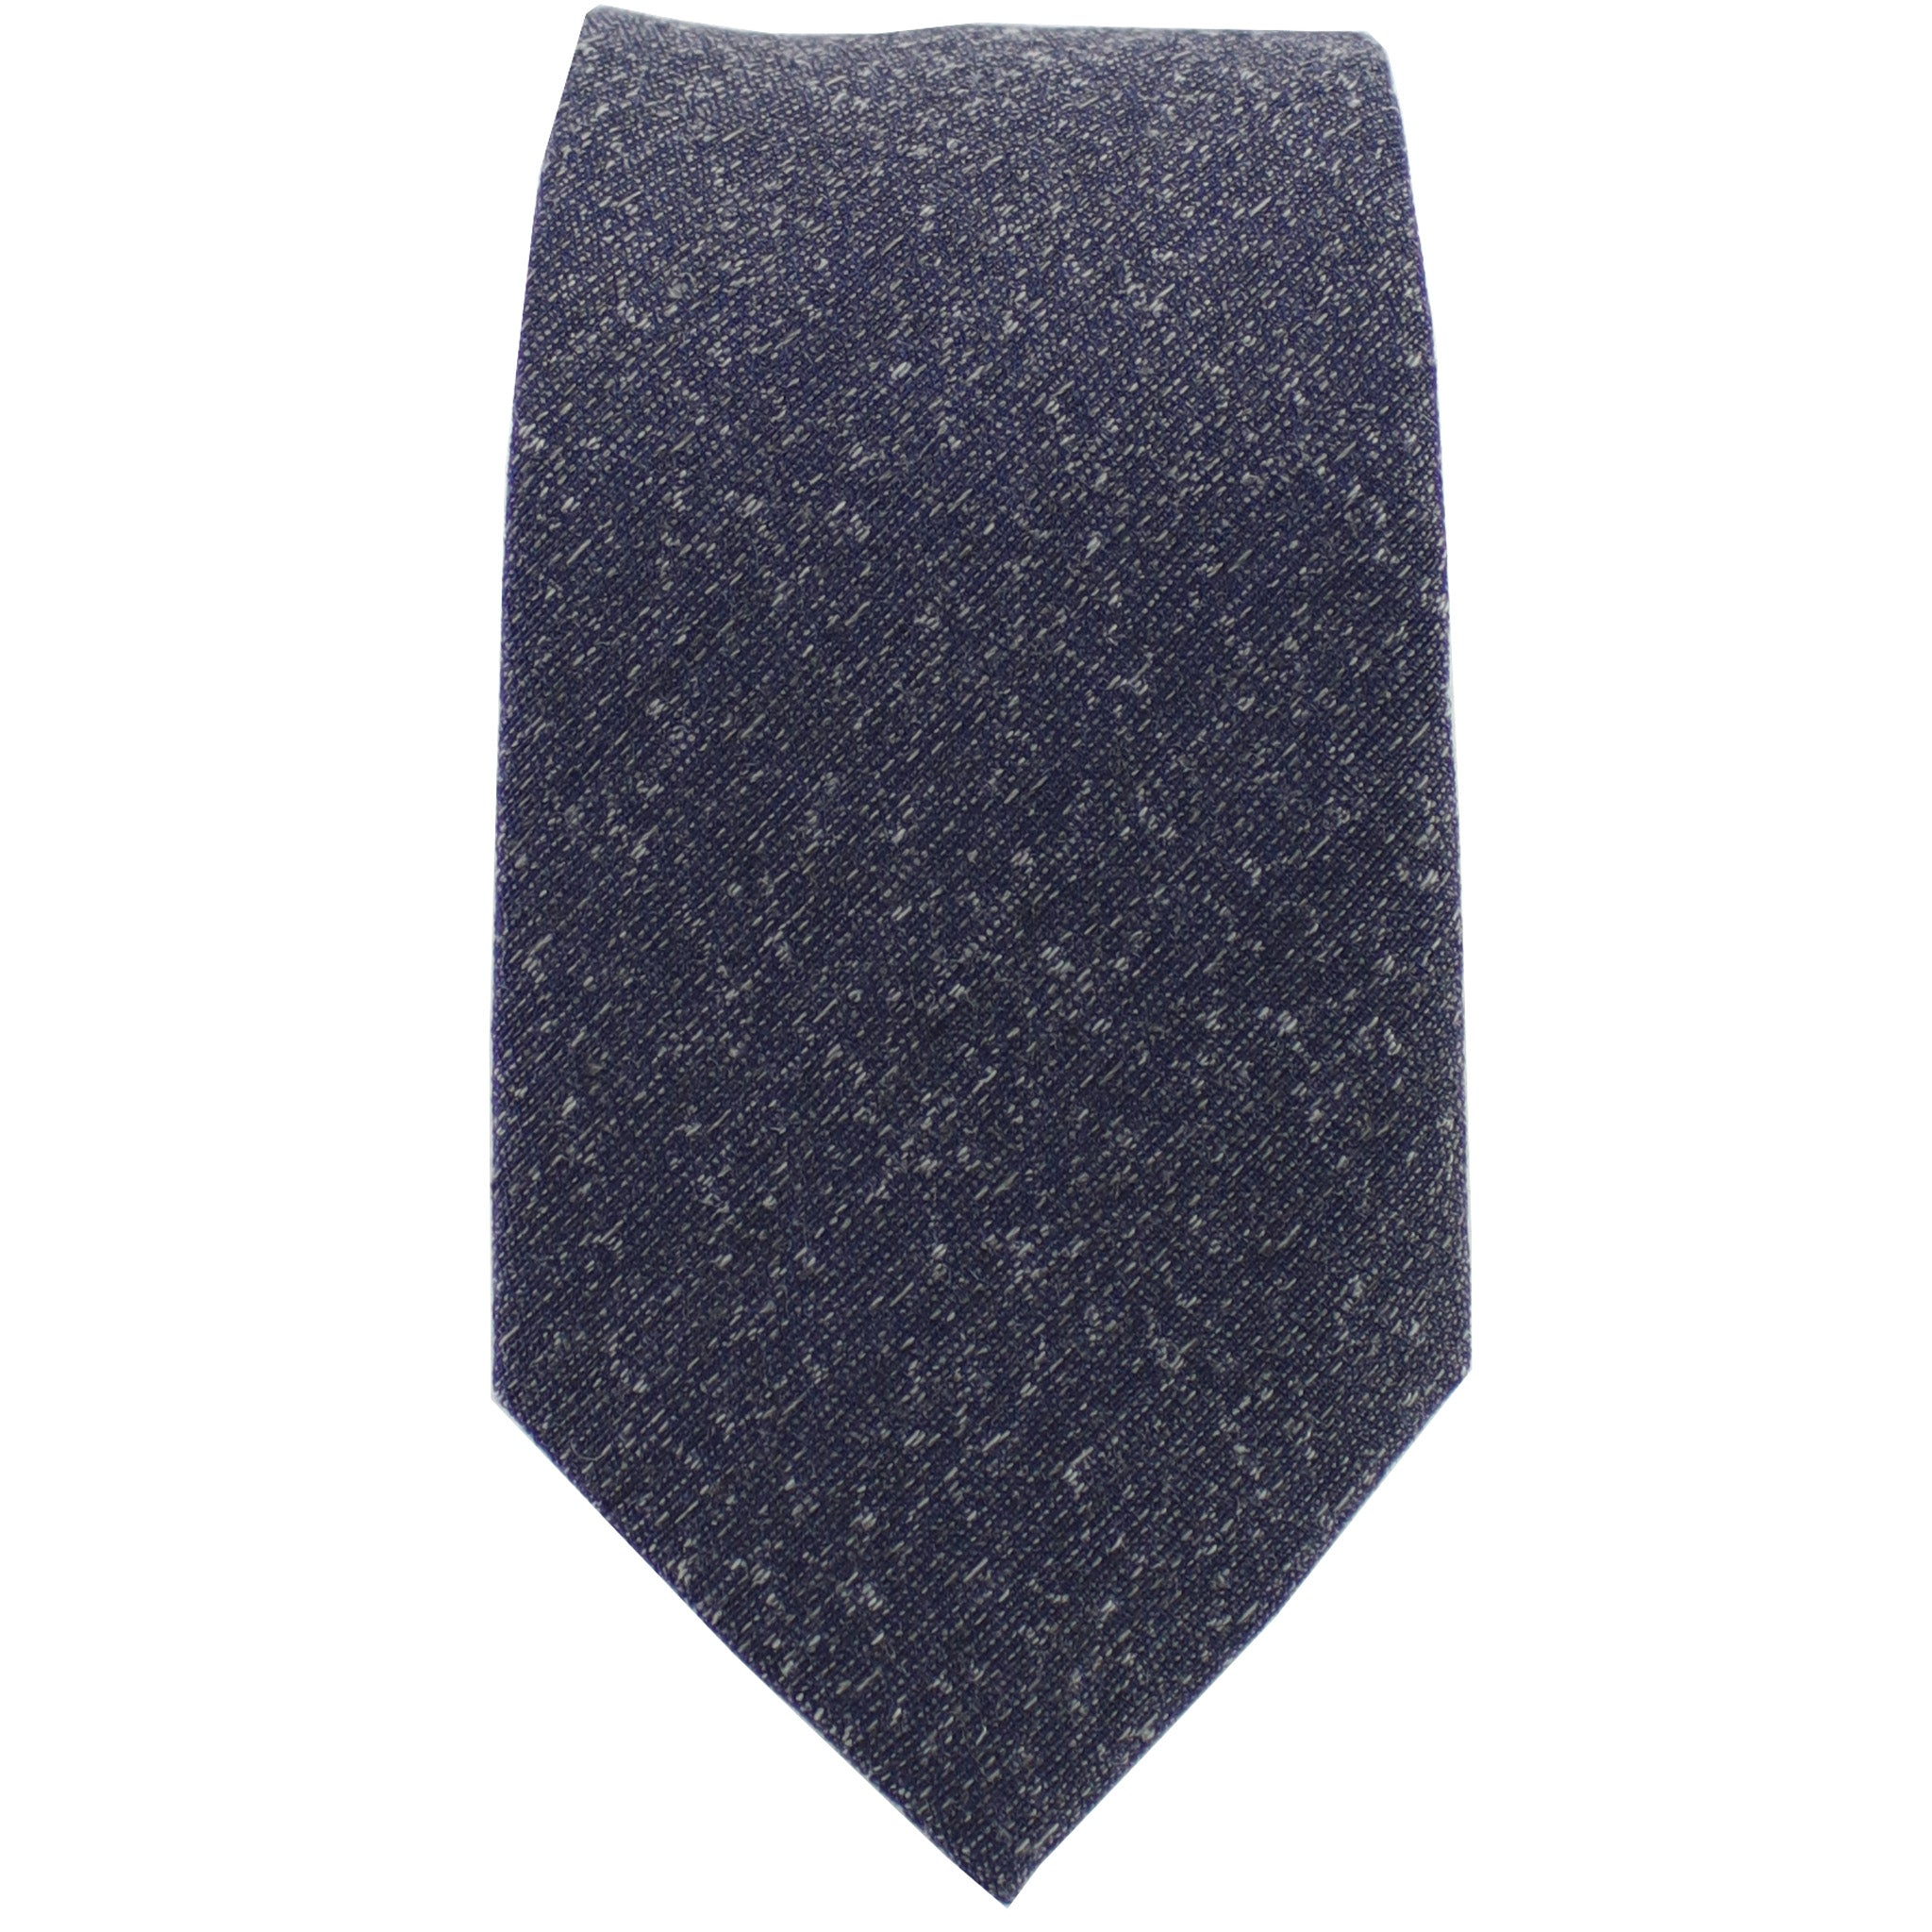 Grey Speck Tie from DIBI